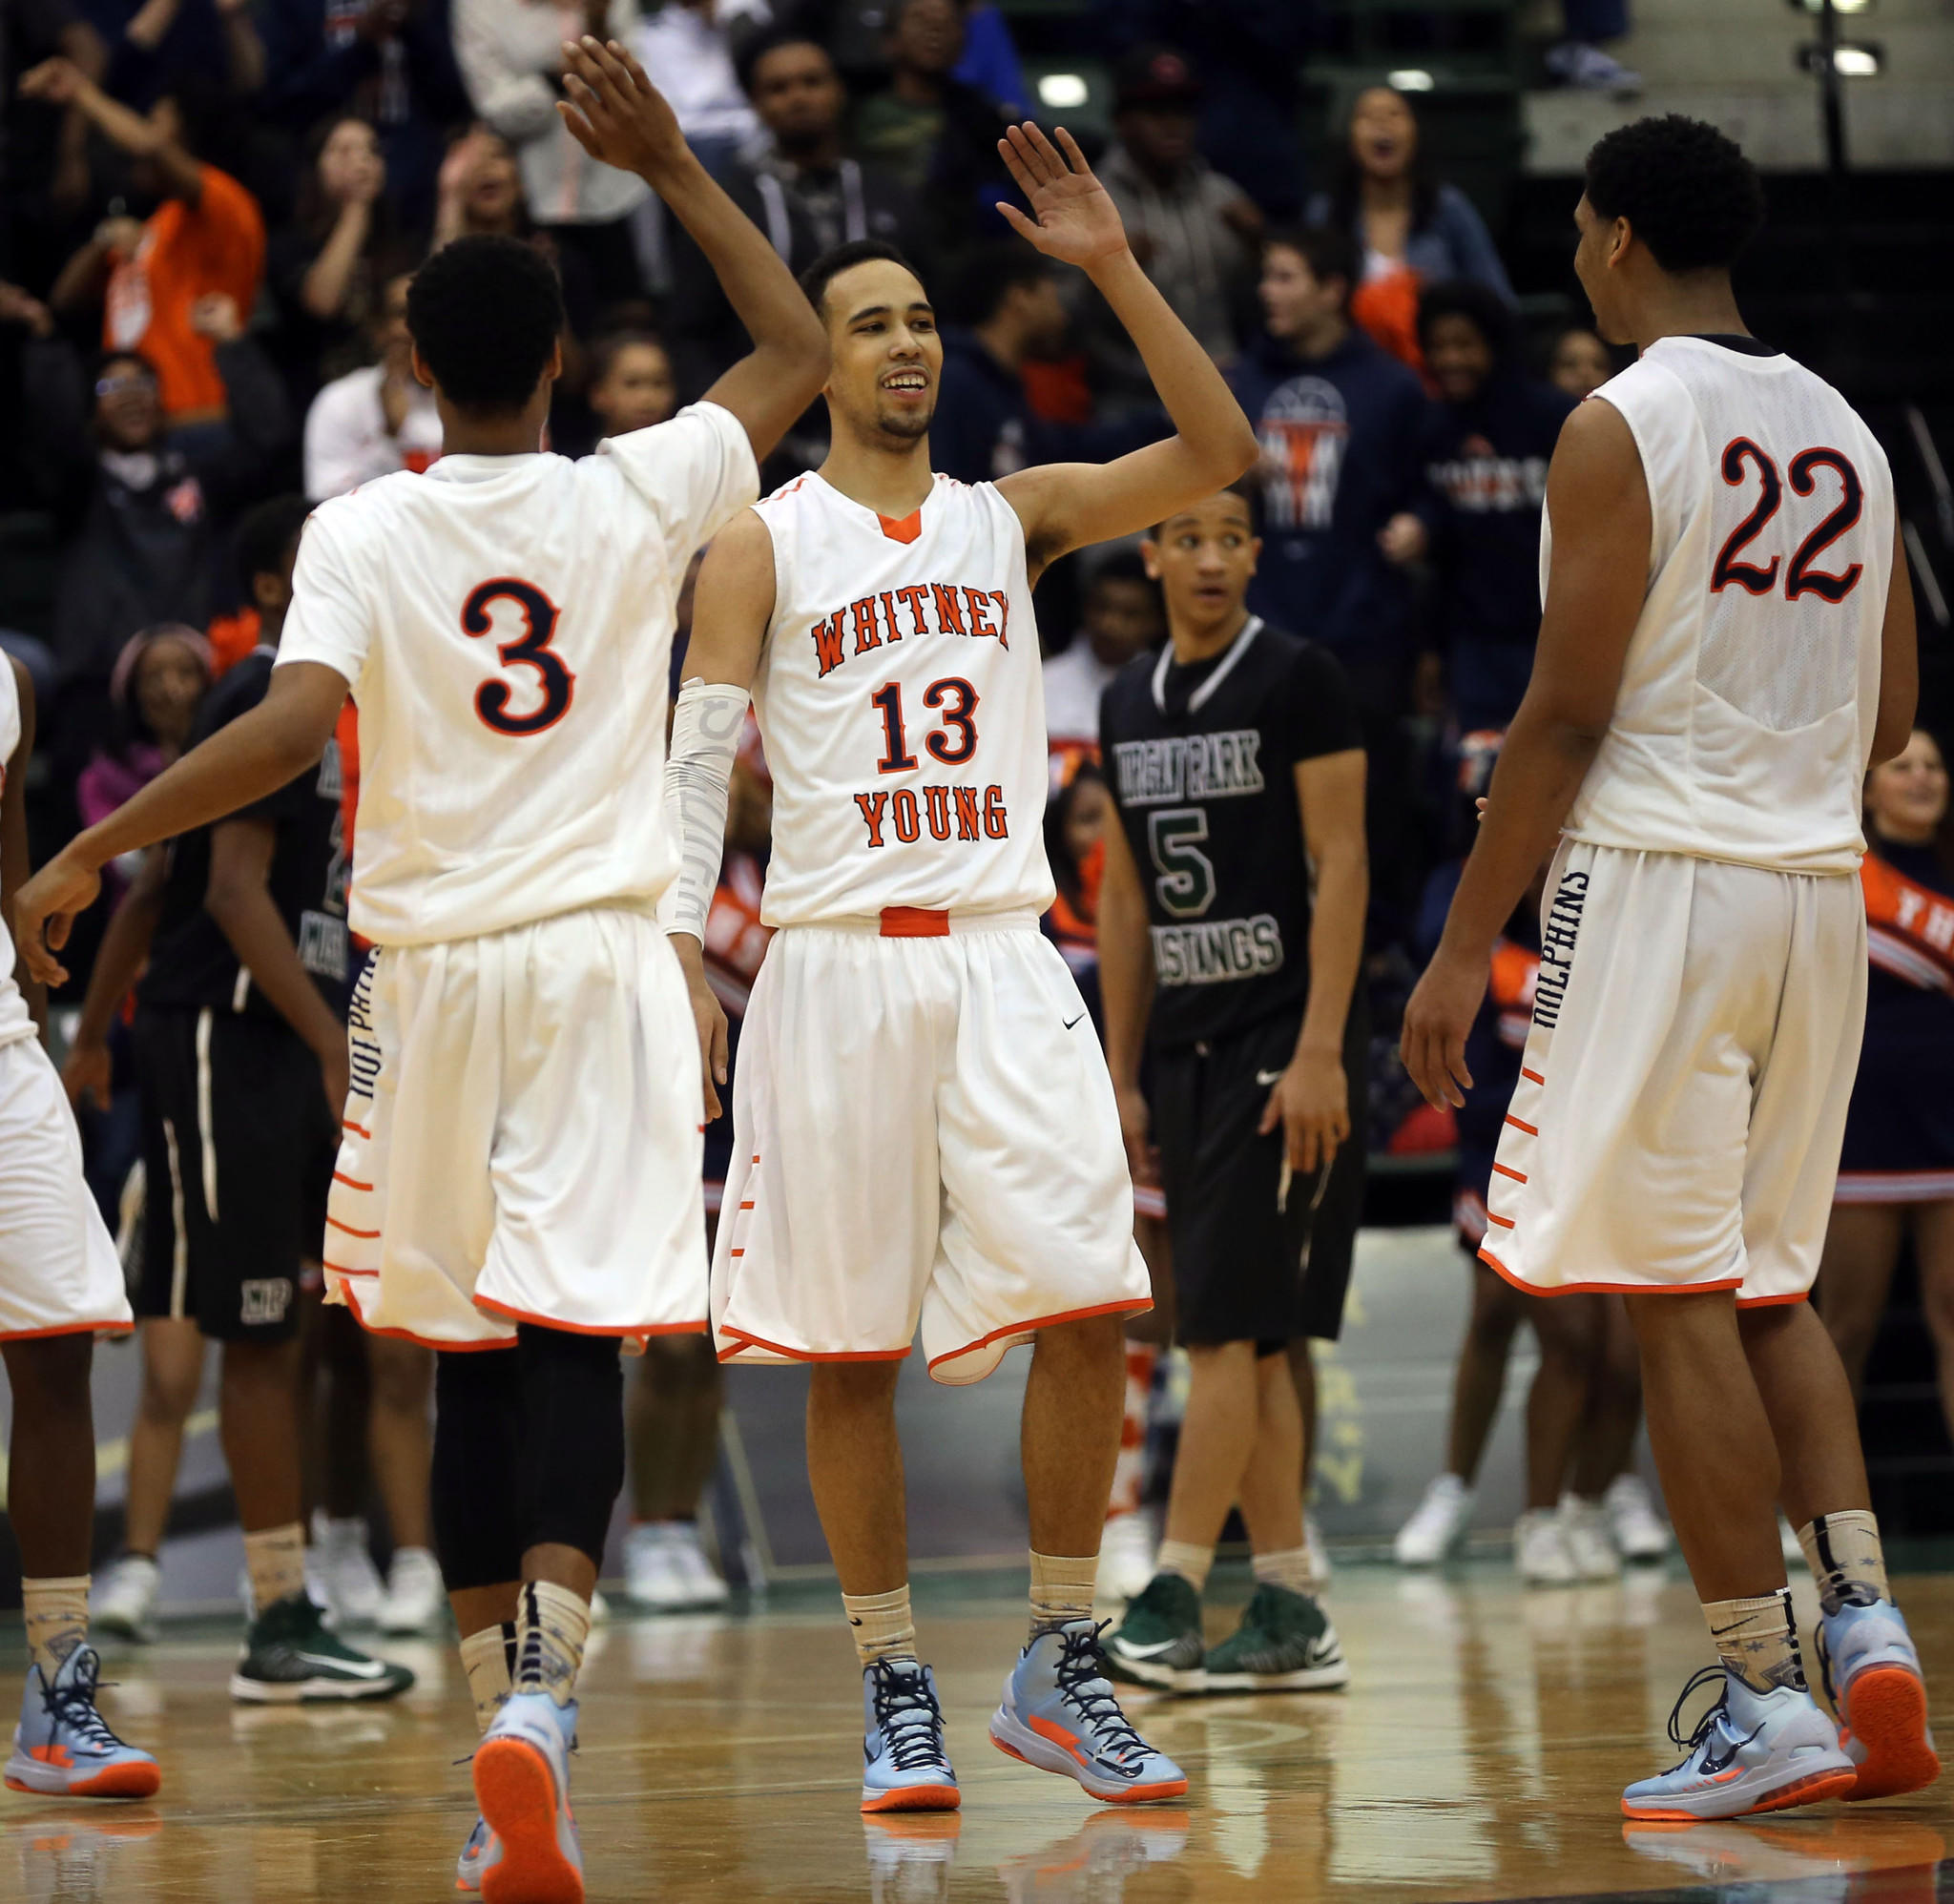 Whitney Young's Miles Reynolds (3), Paul White (13) and Jahlil Okafor (22) celebrate their victory over Morgan Park in the boys basketball Chicago Public League final on Friday, Feb. 15, 2013 at Chicago State University.